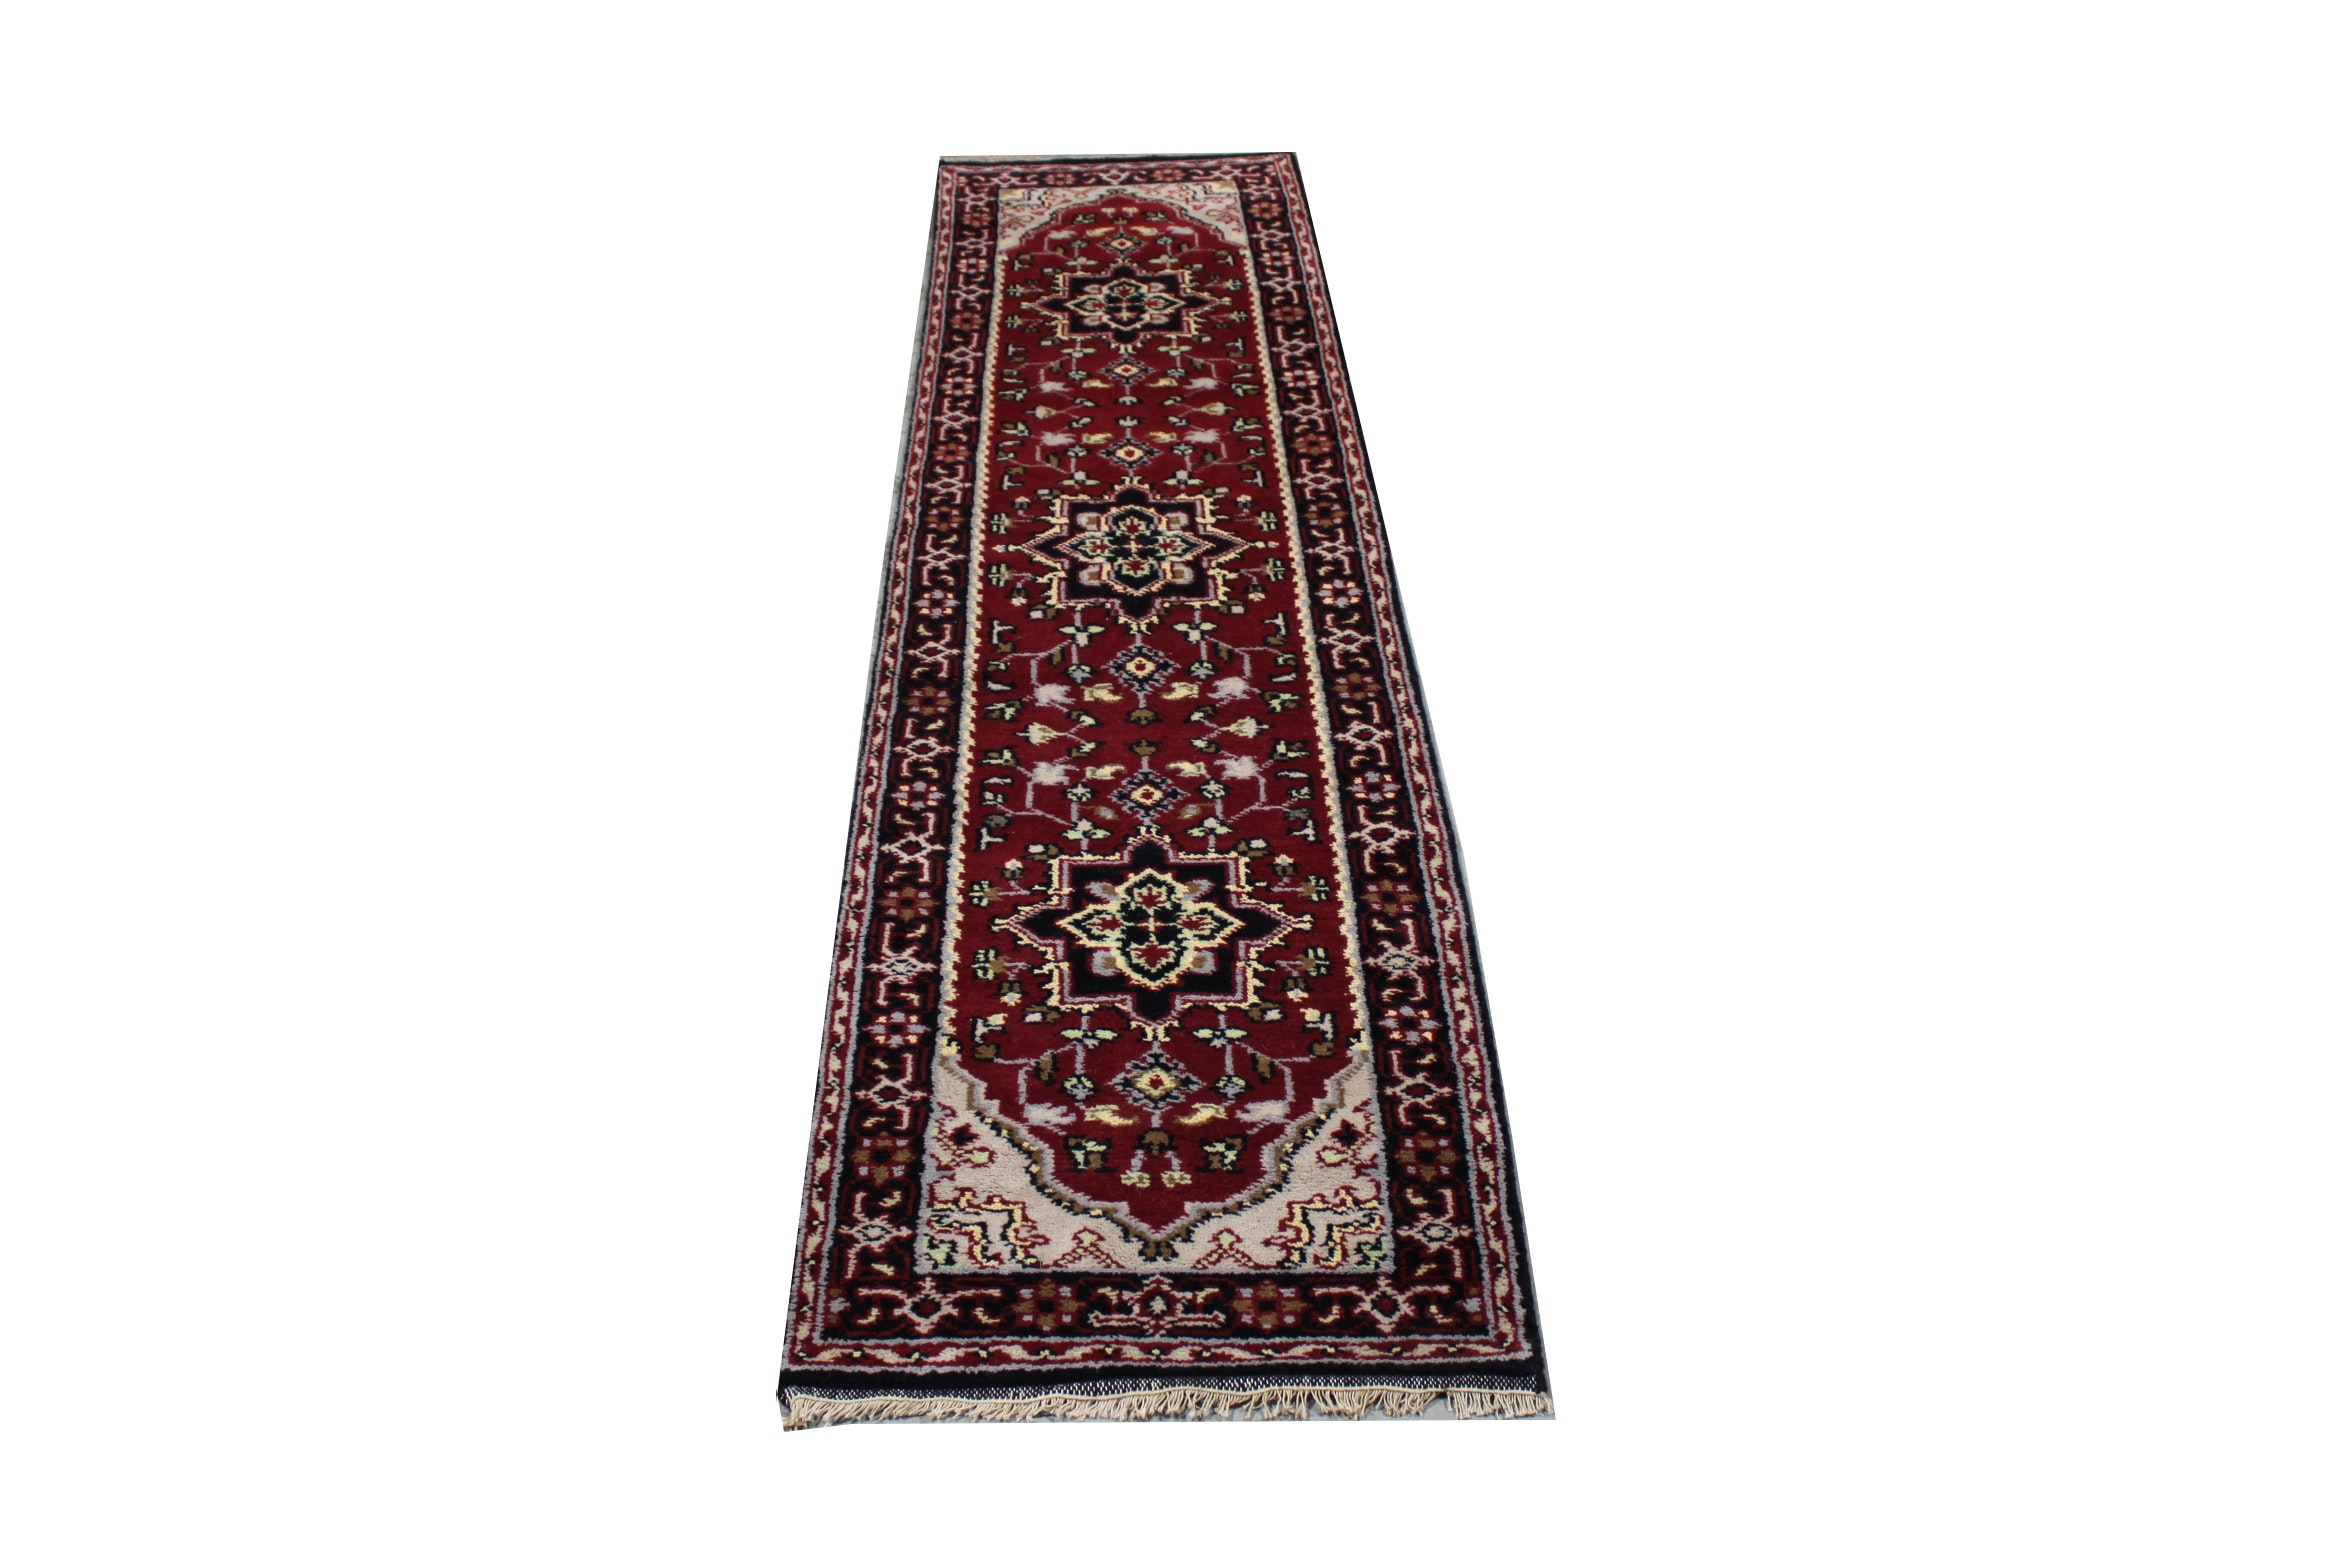 Hand-Knotted Indo-Persian Heriz Wool Carpet Runner